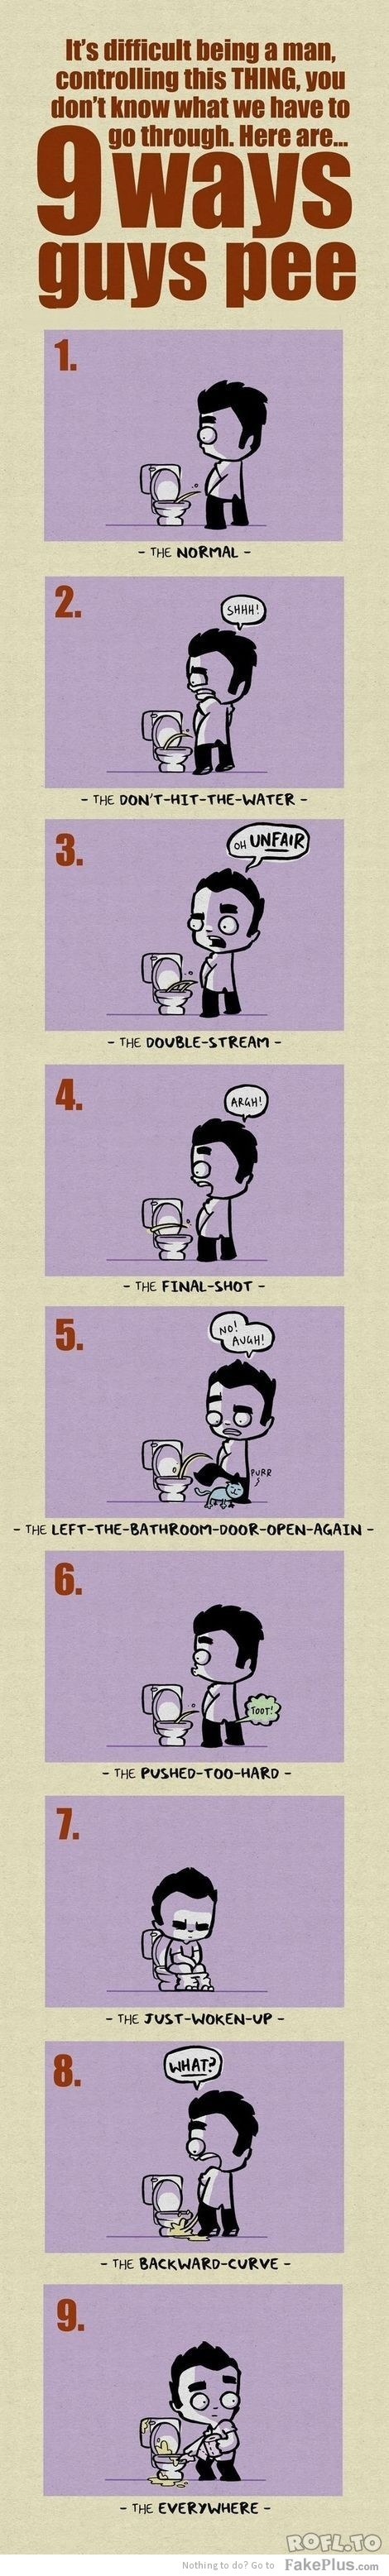 how men pee - Sorry, but us guys can relate to this!